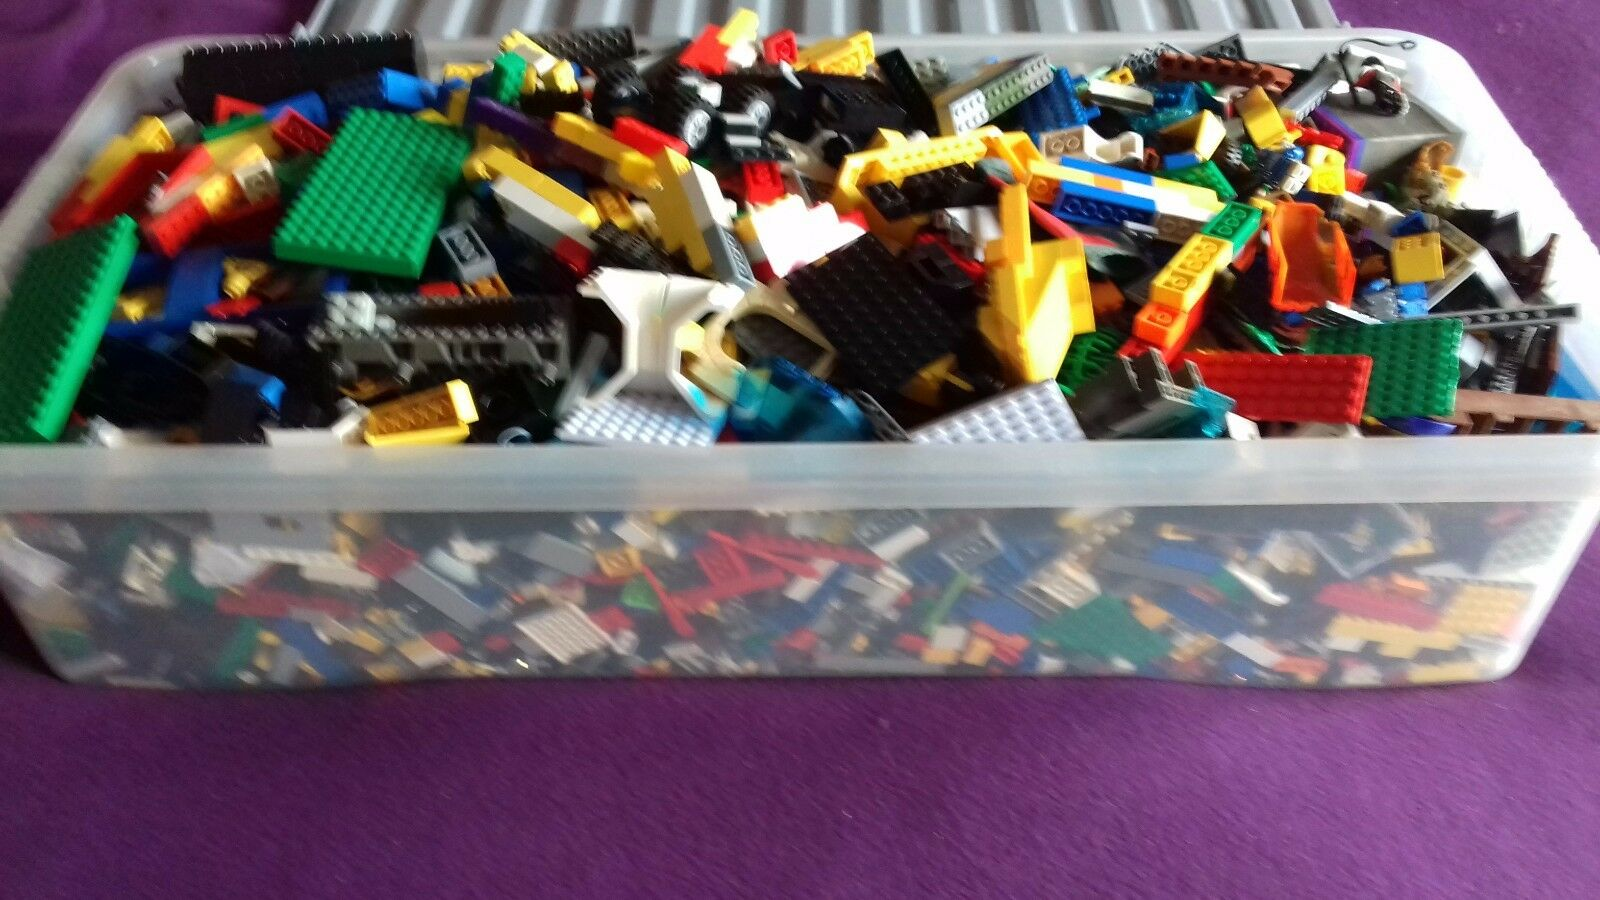 Lego huge box of lego 1000s of pieces box box box inside size is 30inchX14inchX7inch VGC 91405b